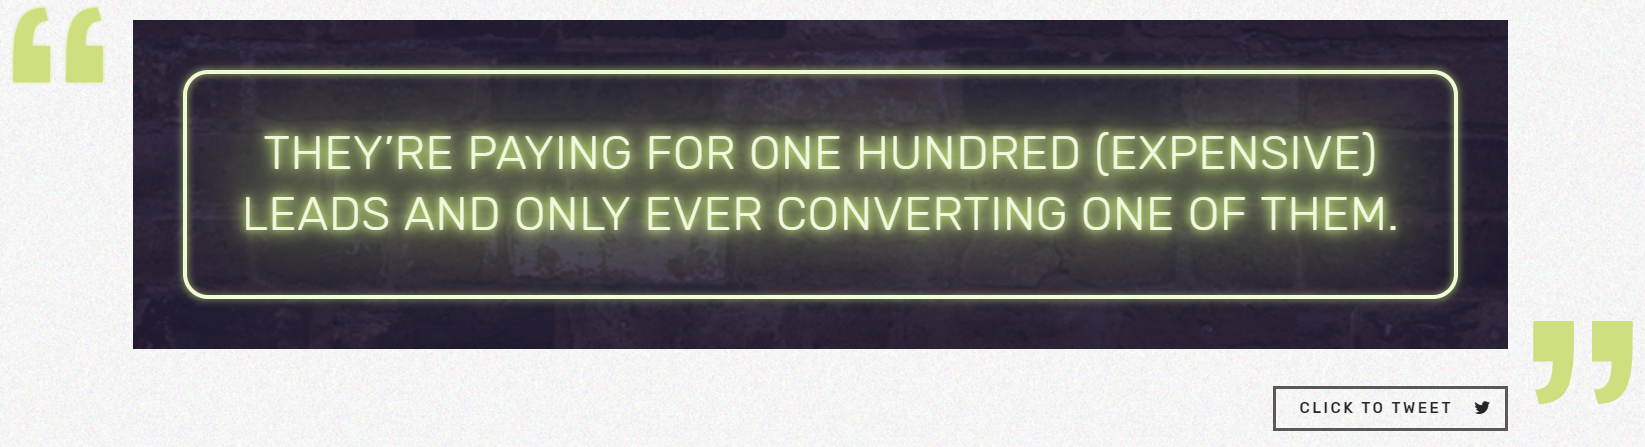 "screenshot of quote ""they're paying for one hundred (expensive) leads and only ever converting one of them"""